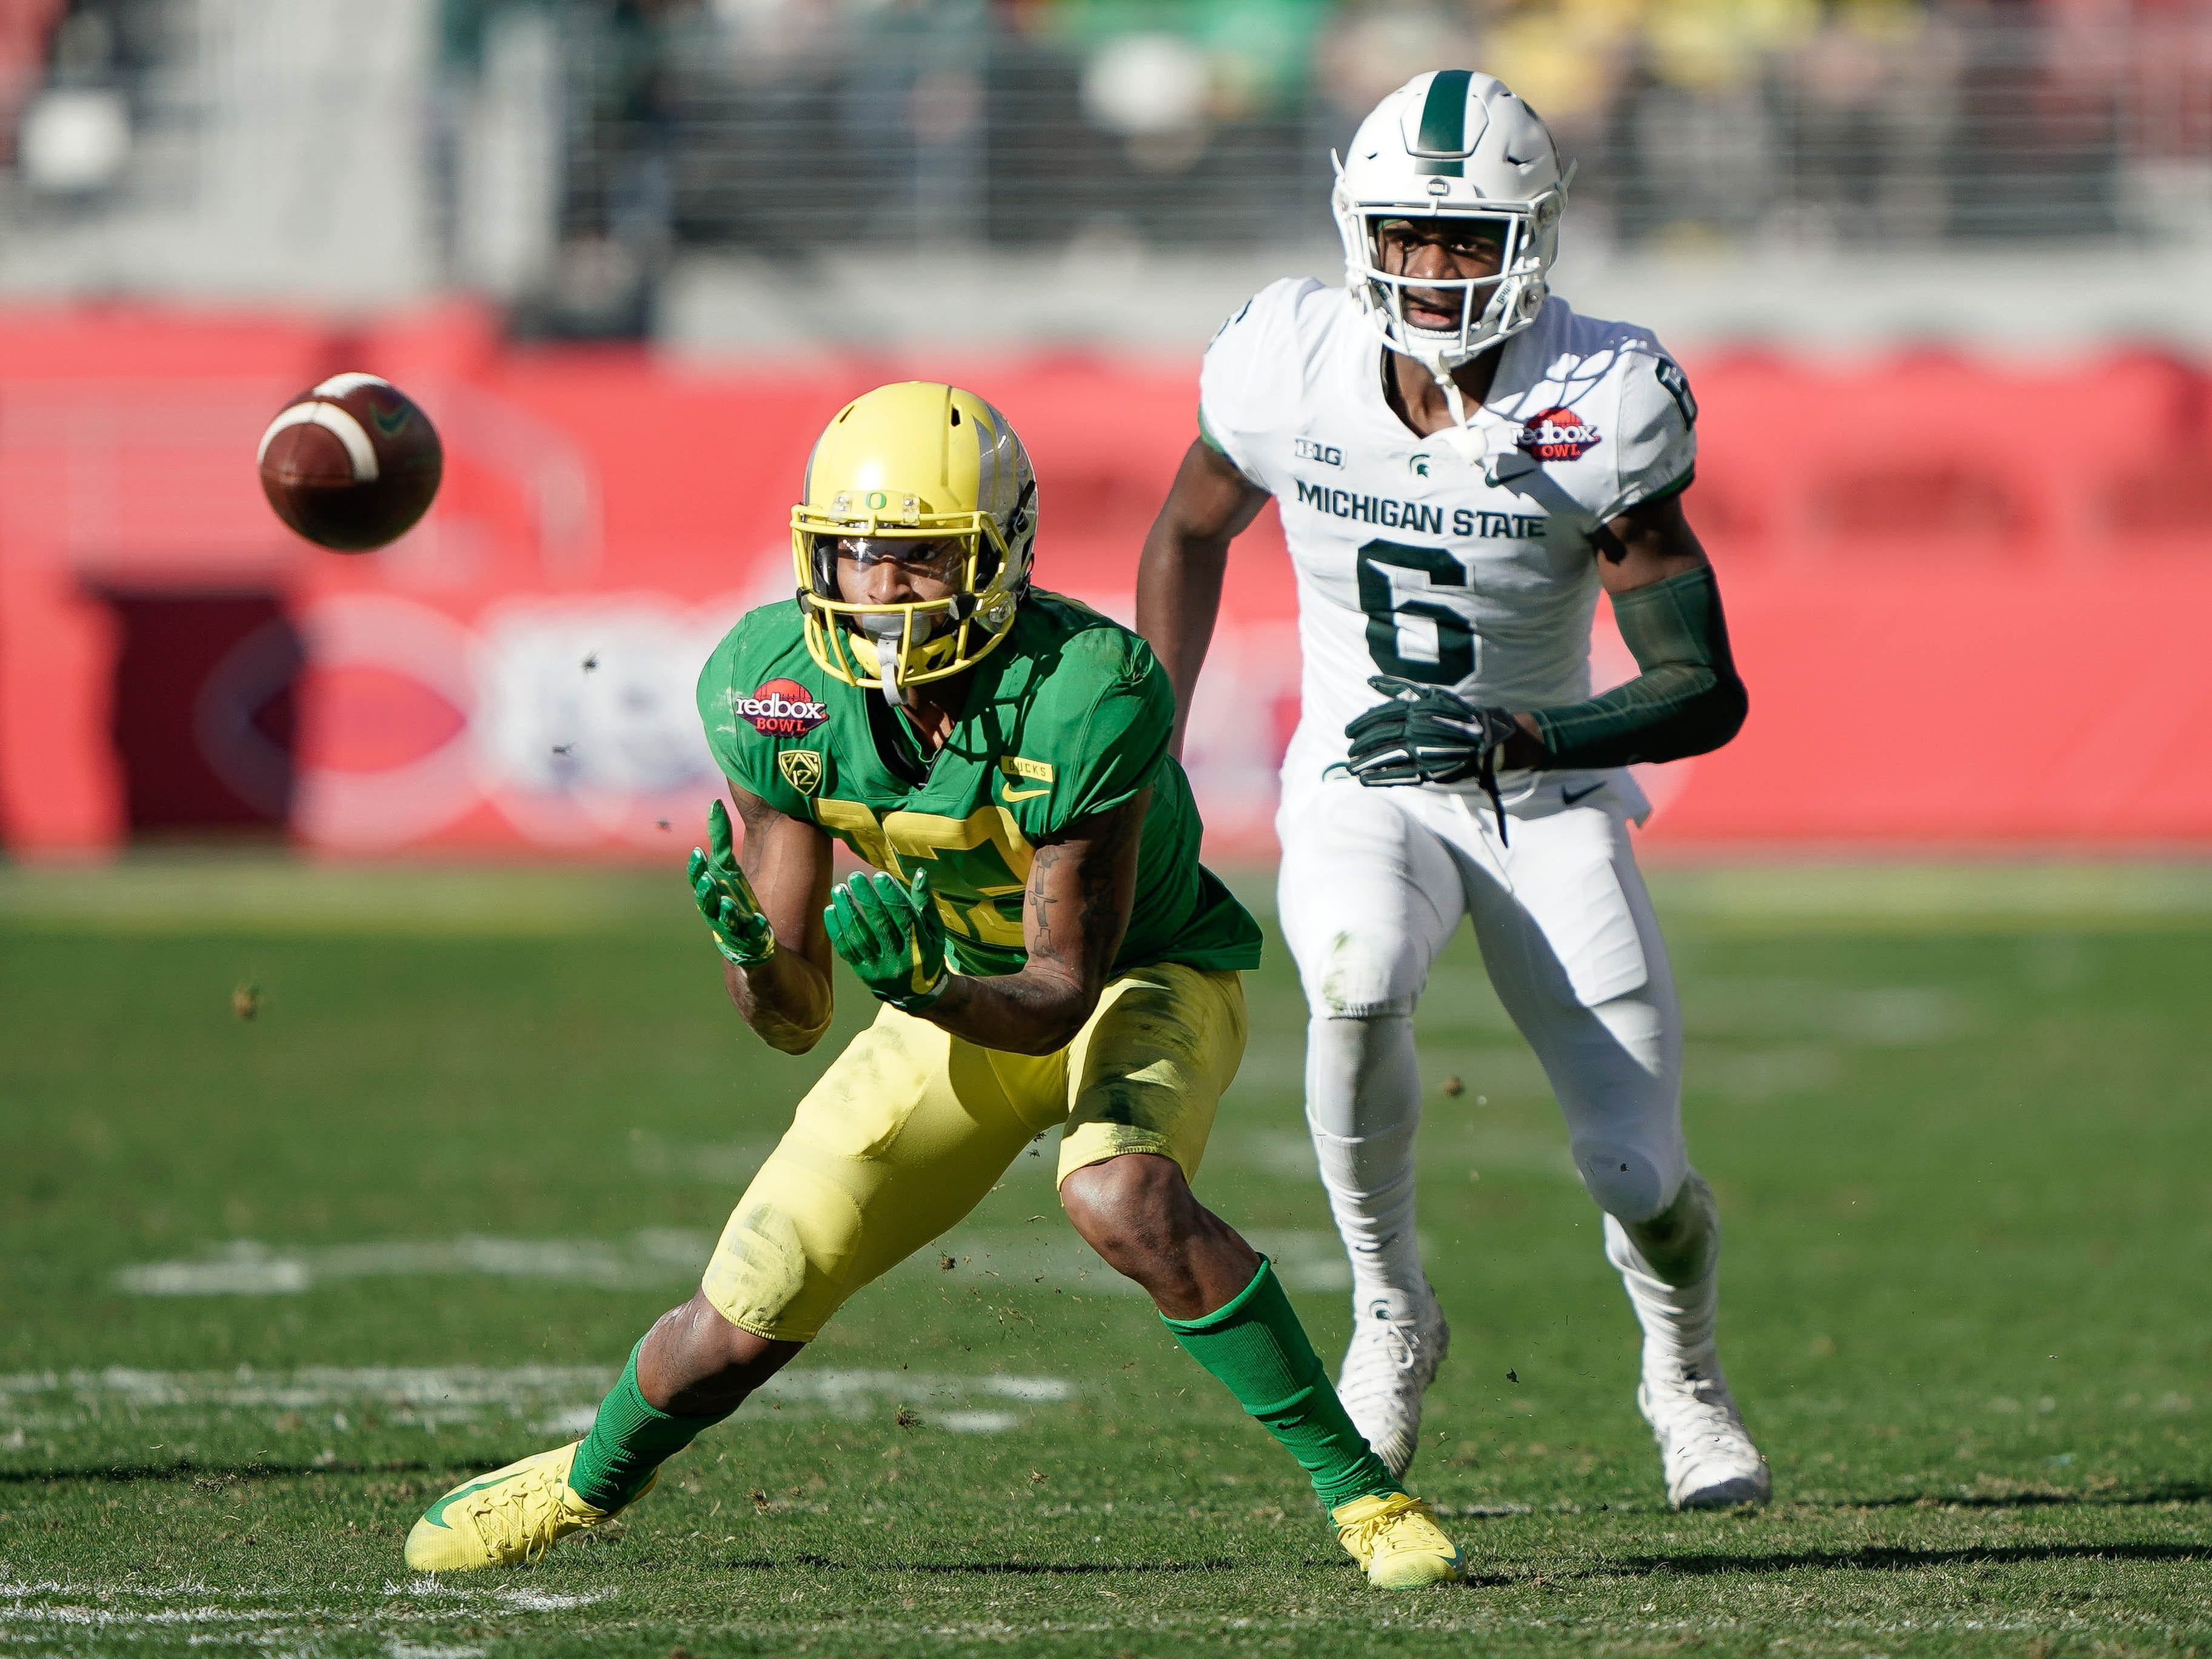 Oregon Ducks wide receiver Dillon Mitchell (13) prepares to catch the ball against Michigan State Spartans safety David Dowell (6) during the second quarter at Levi's Stadium.